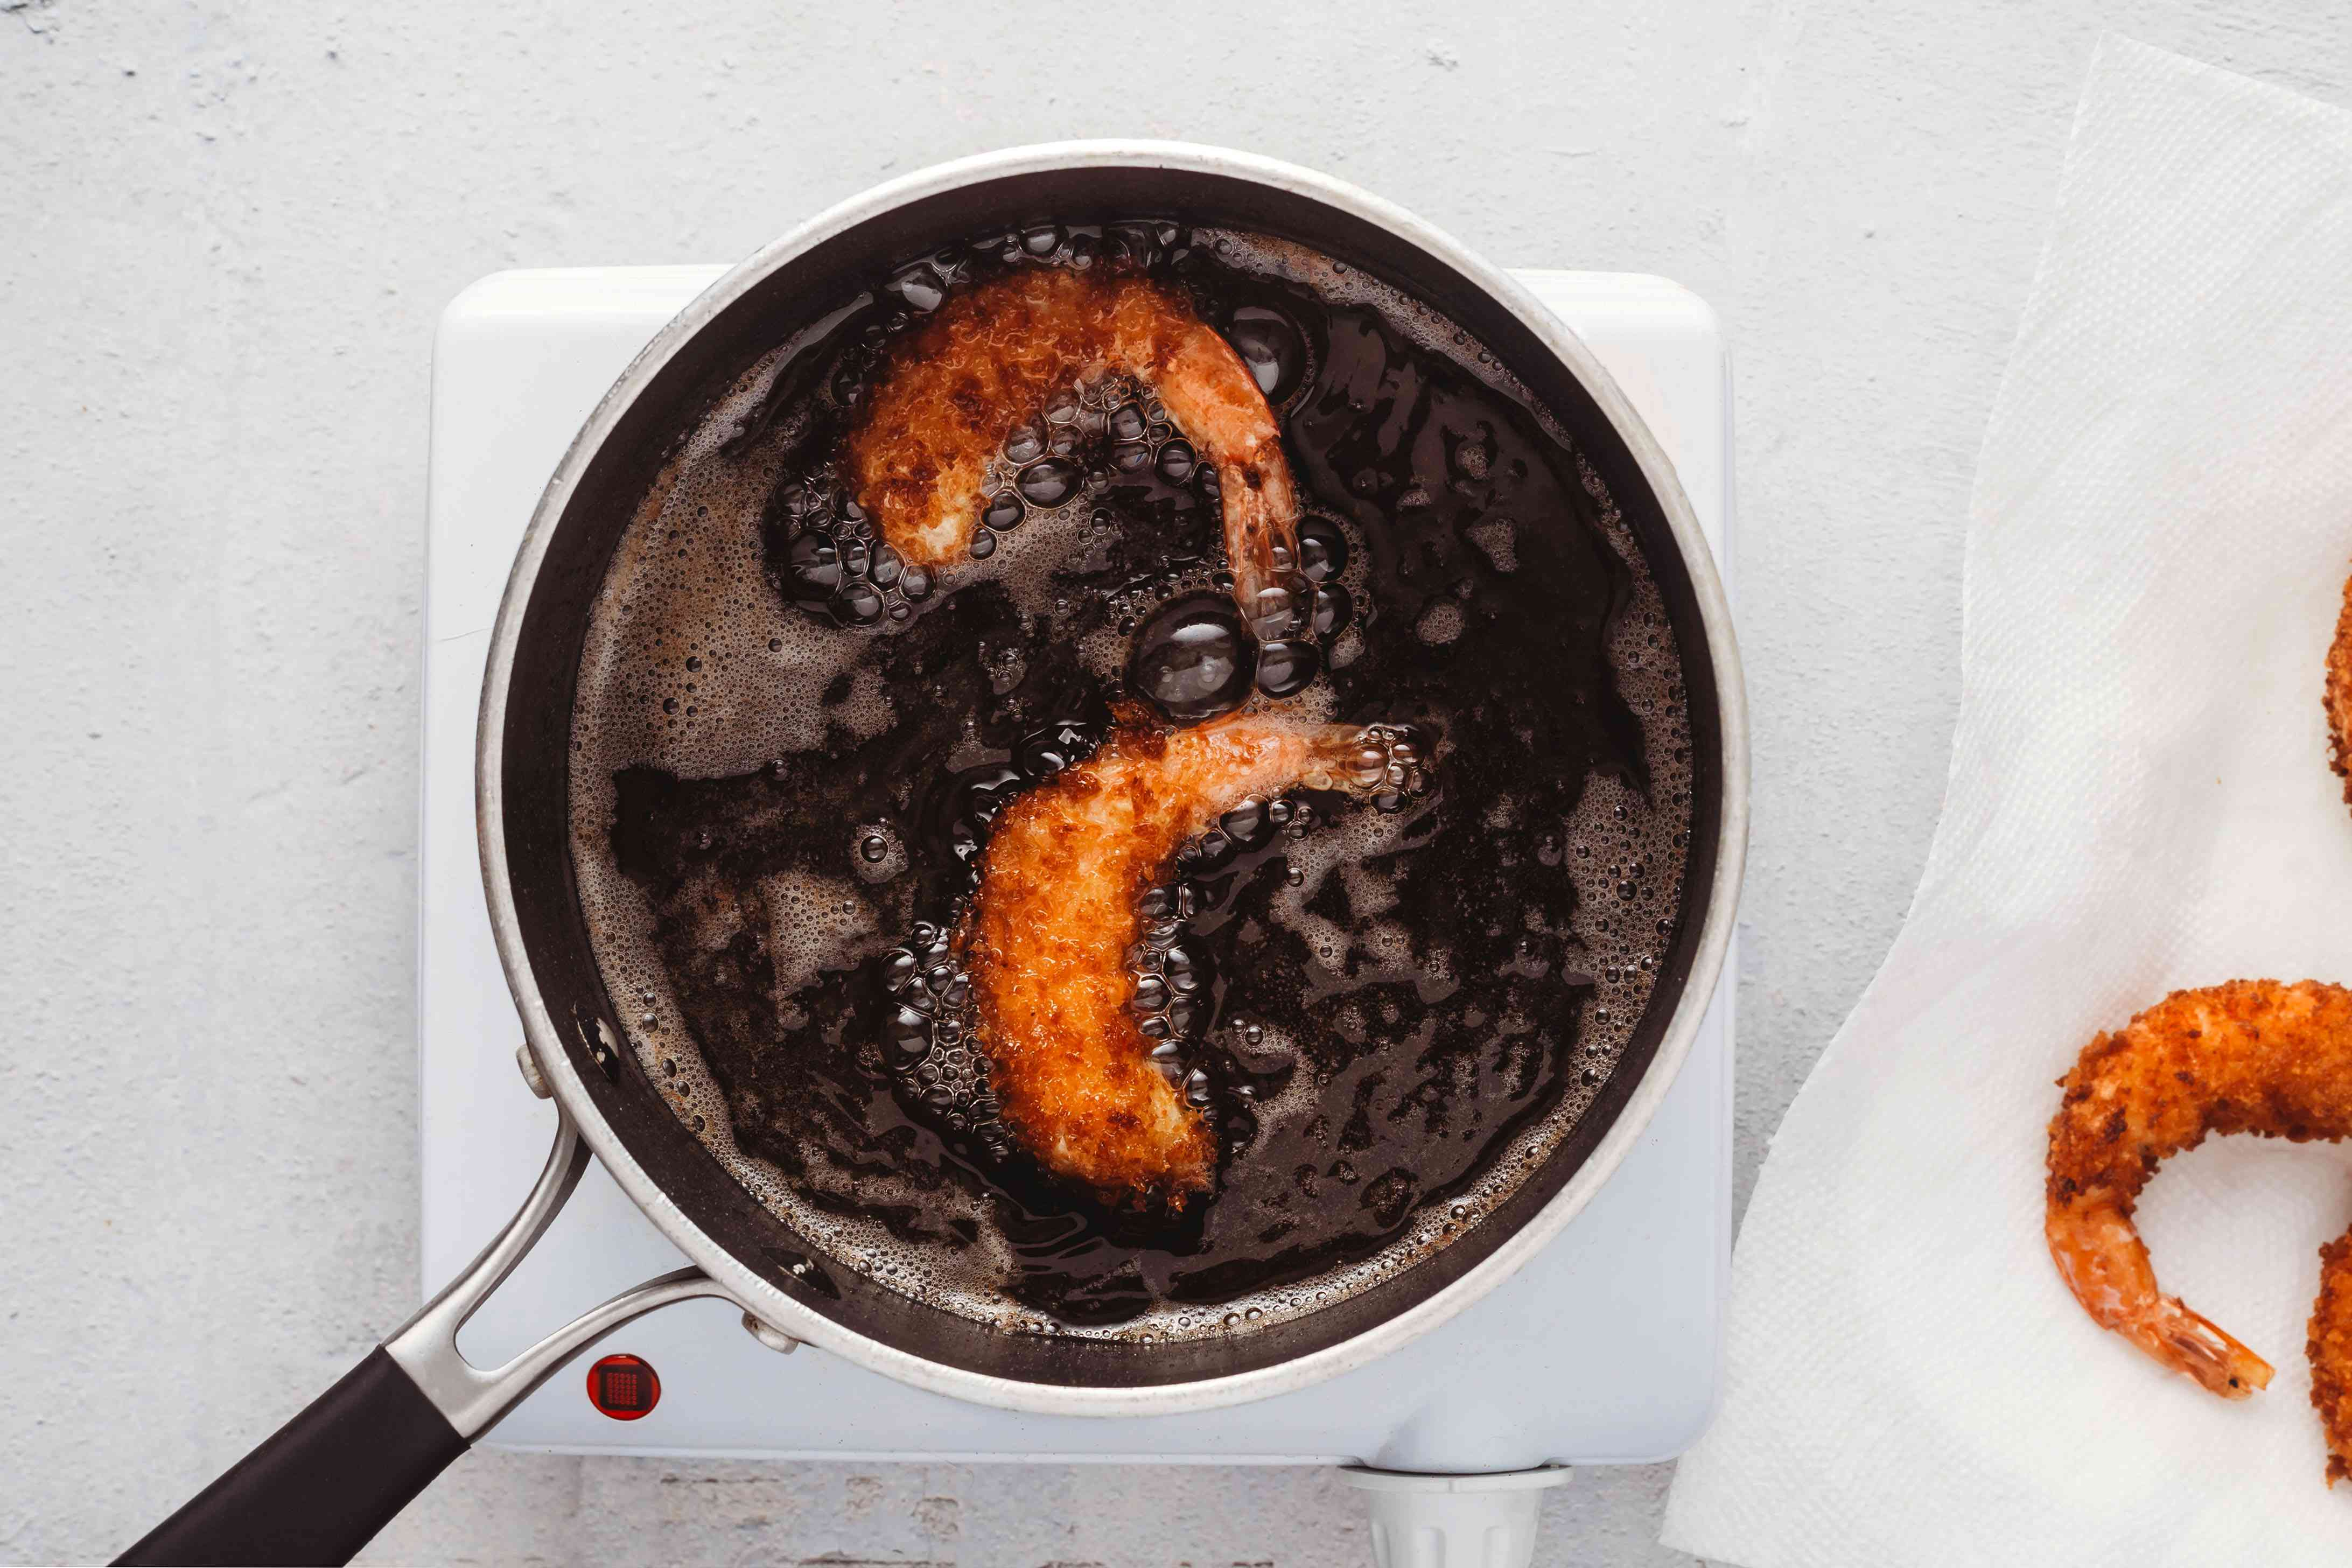 shrimp frying in a pot with oil